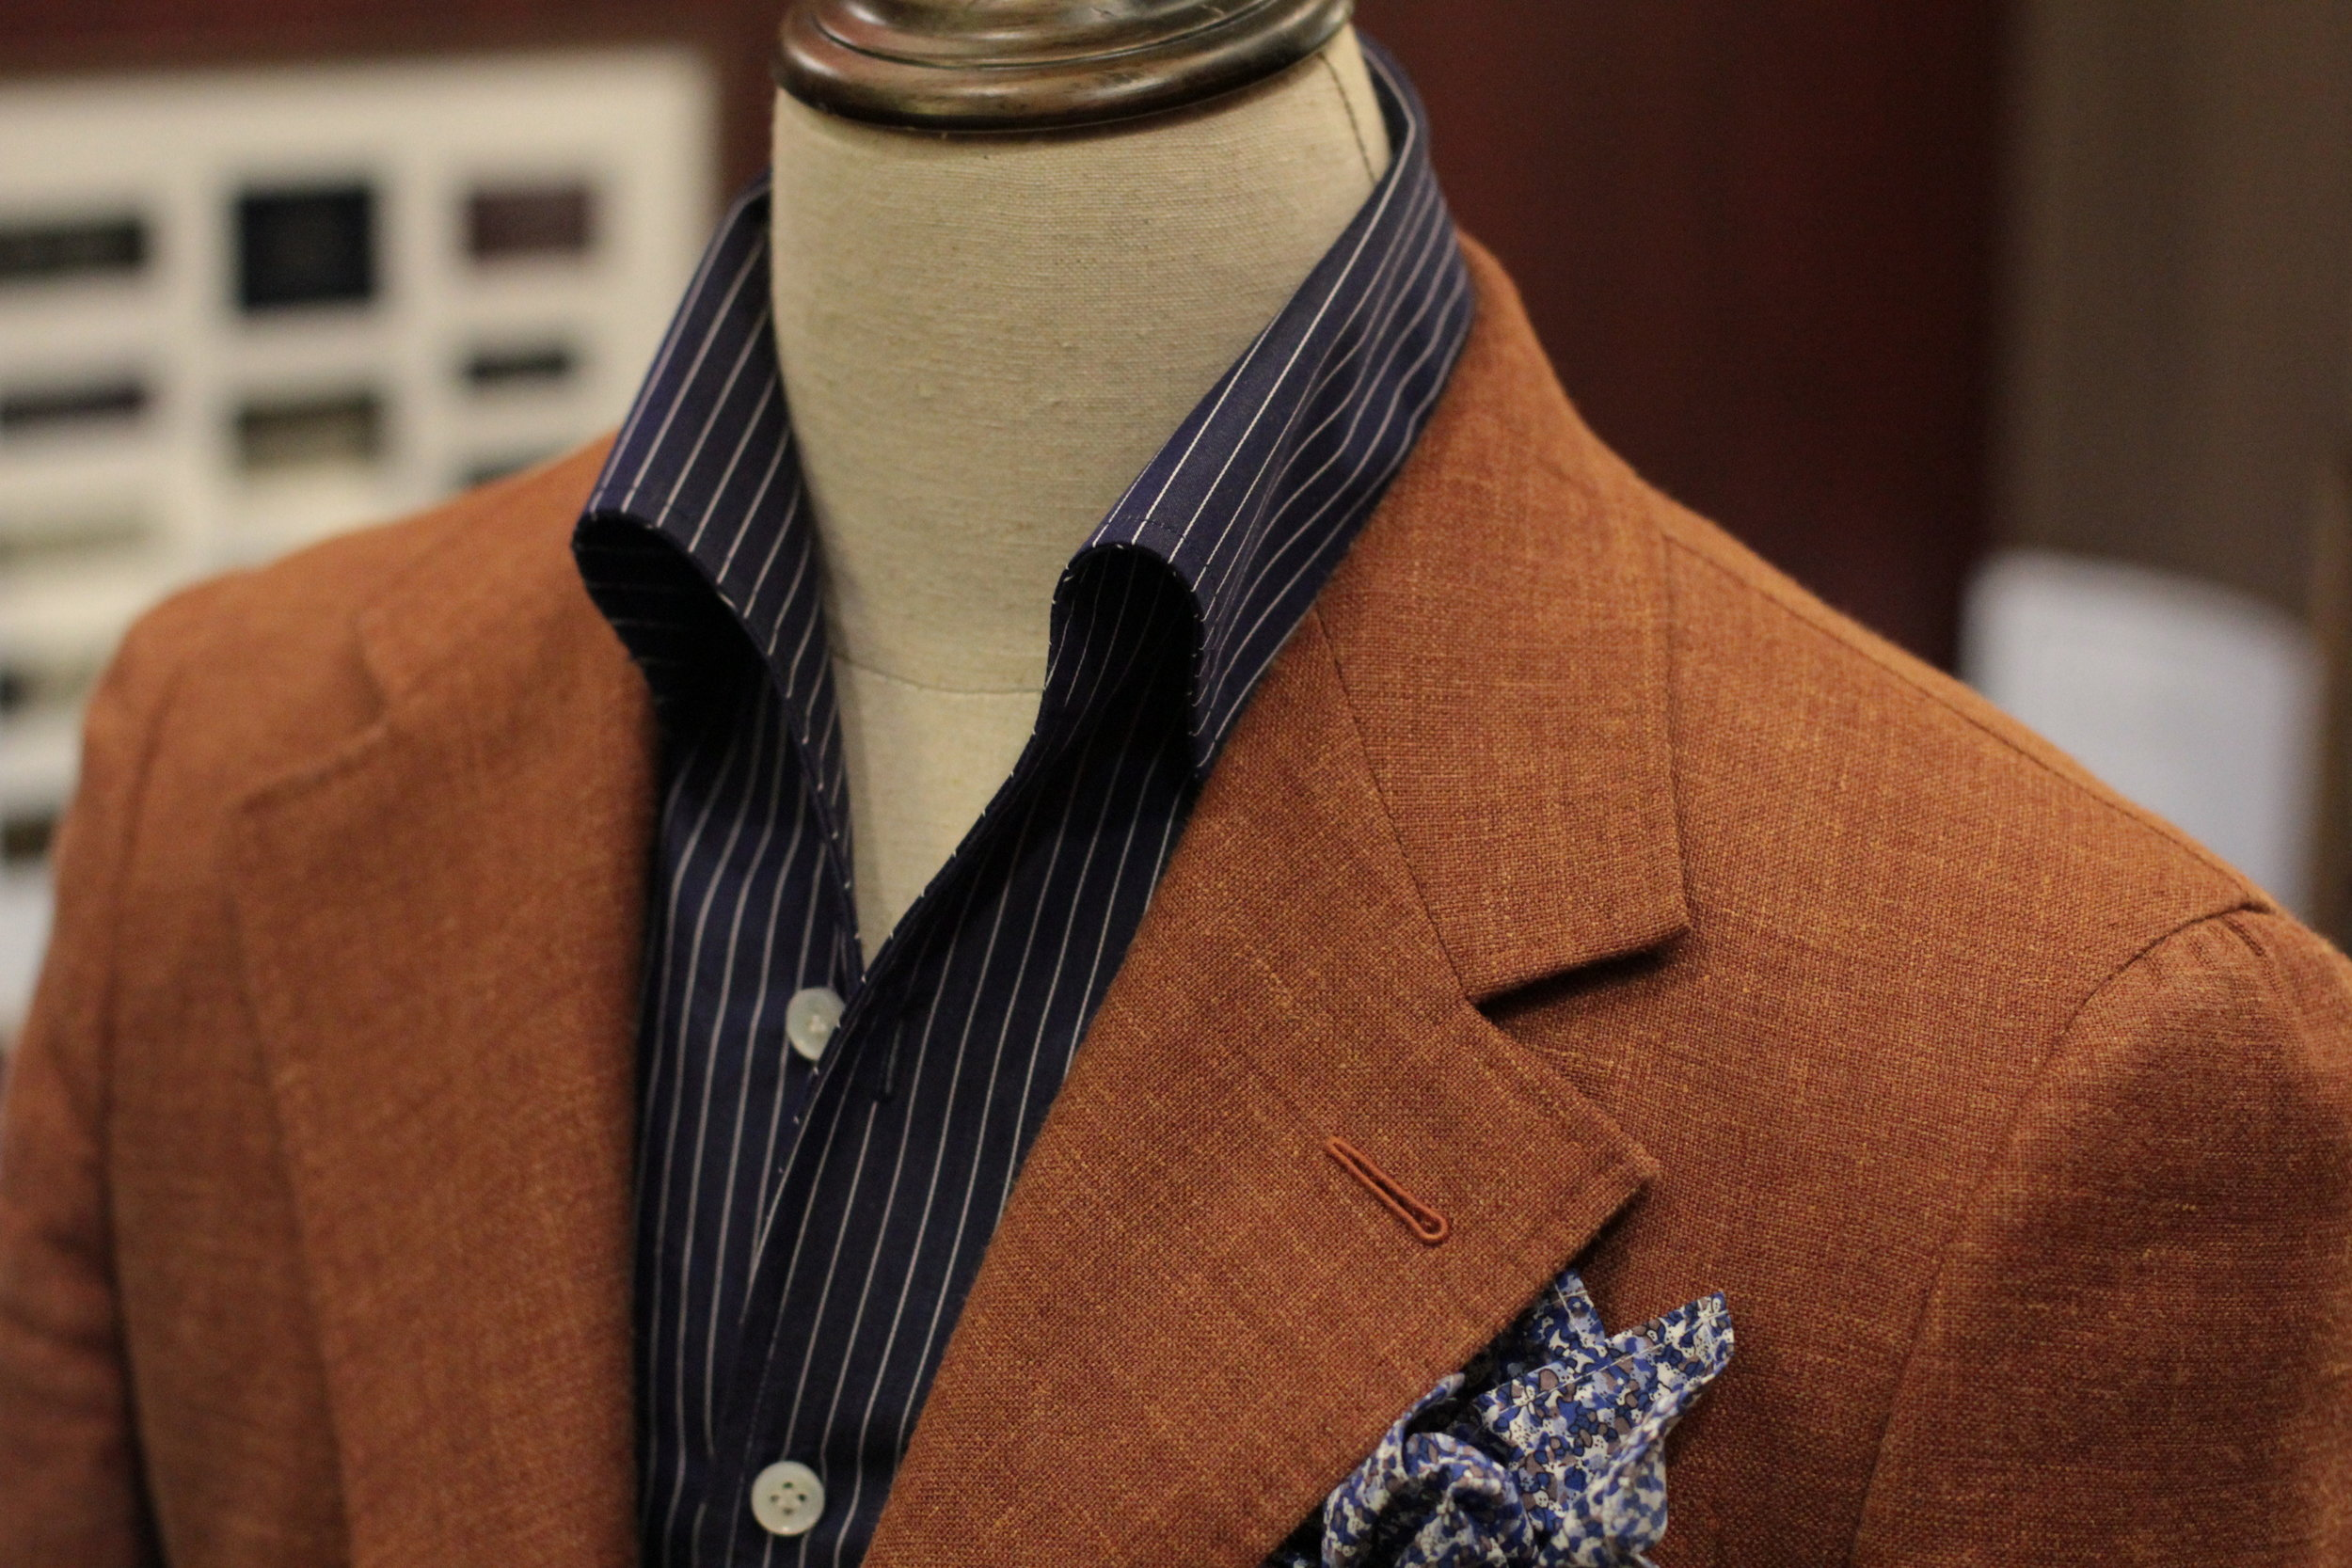 Mr Chad Vitale Barberis Canonico 1033038 Made Suits Tailored Singapore Suits Business VBC.JPG